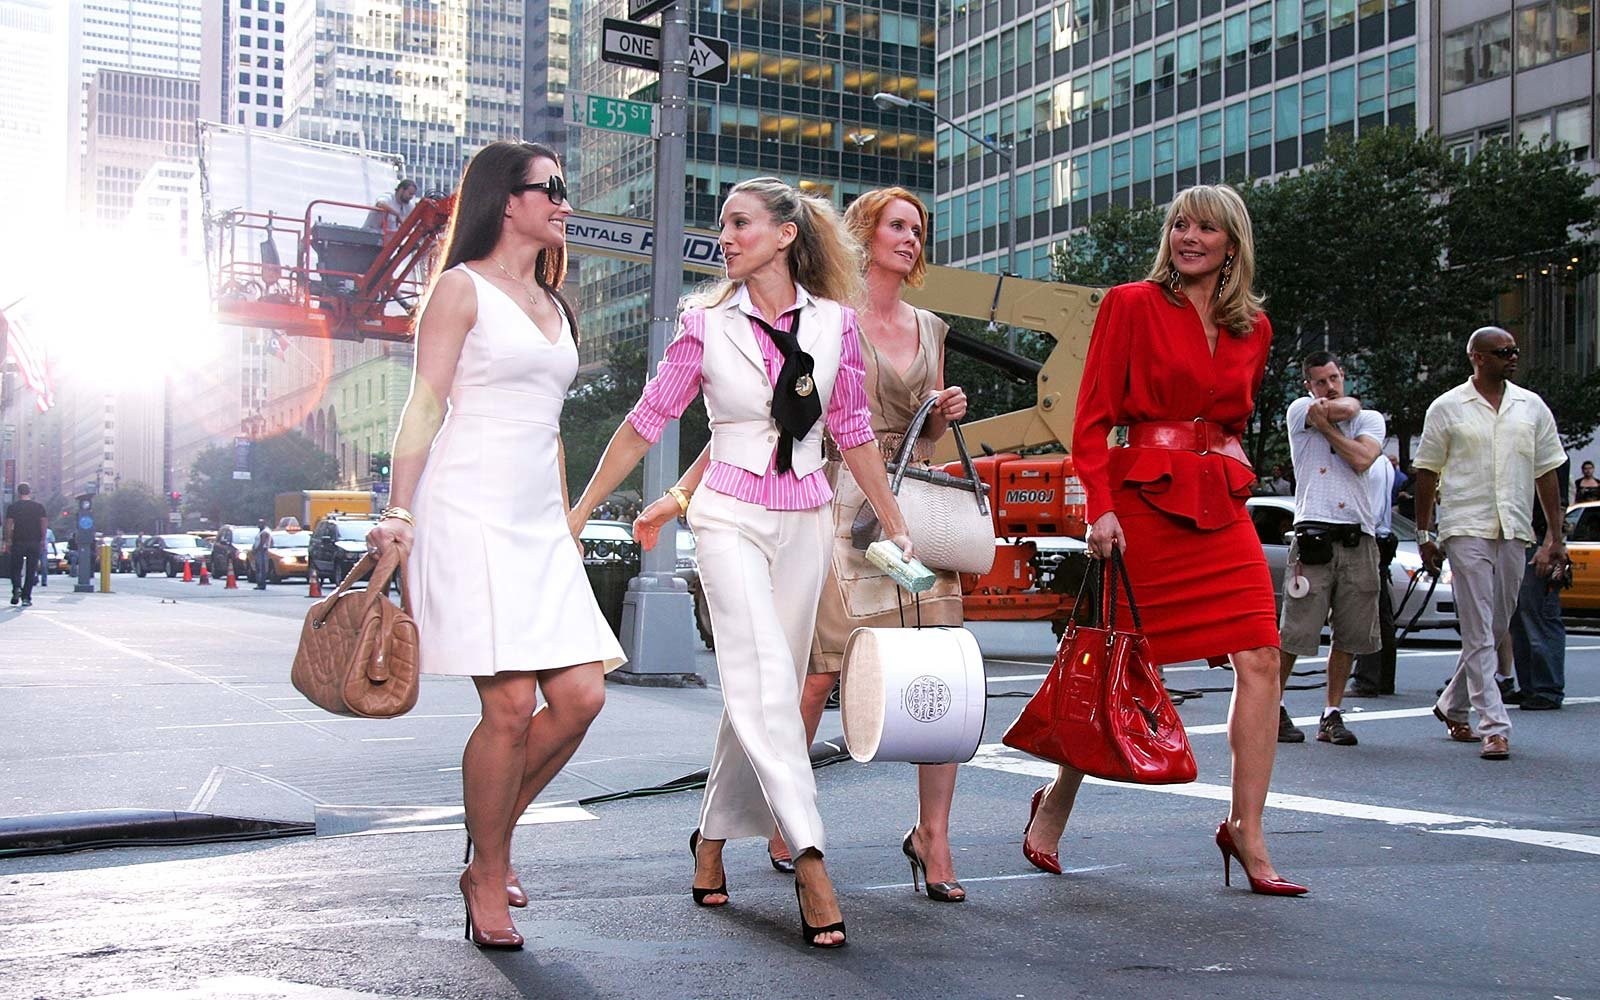 The Top 10 New York City Shopping Fashion Tours (w/Prices)